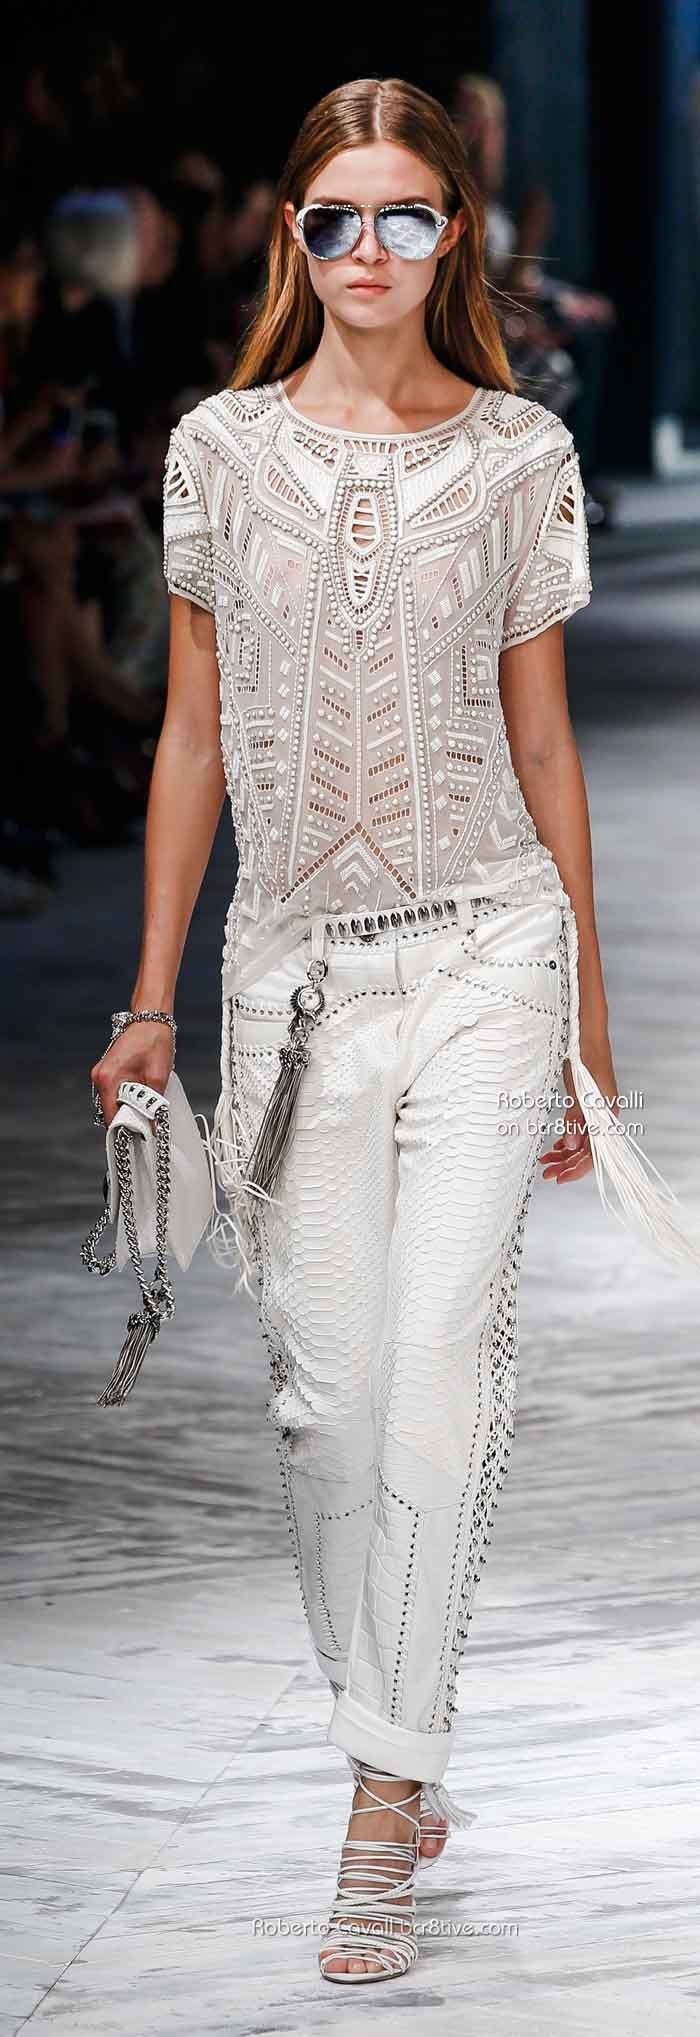 Roberto Cavalli Spring 2014, #fashion , #designerfashion, #Spring2014 - I need this top